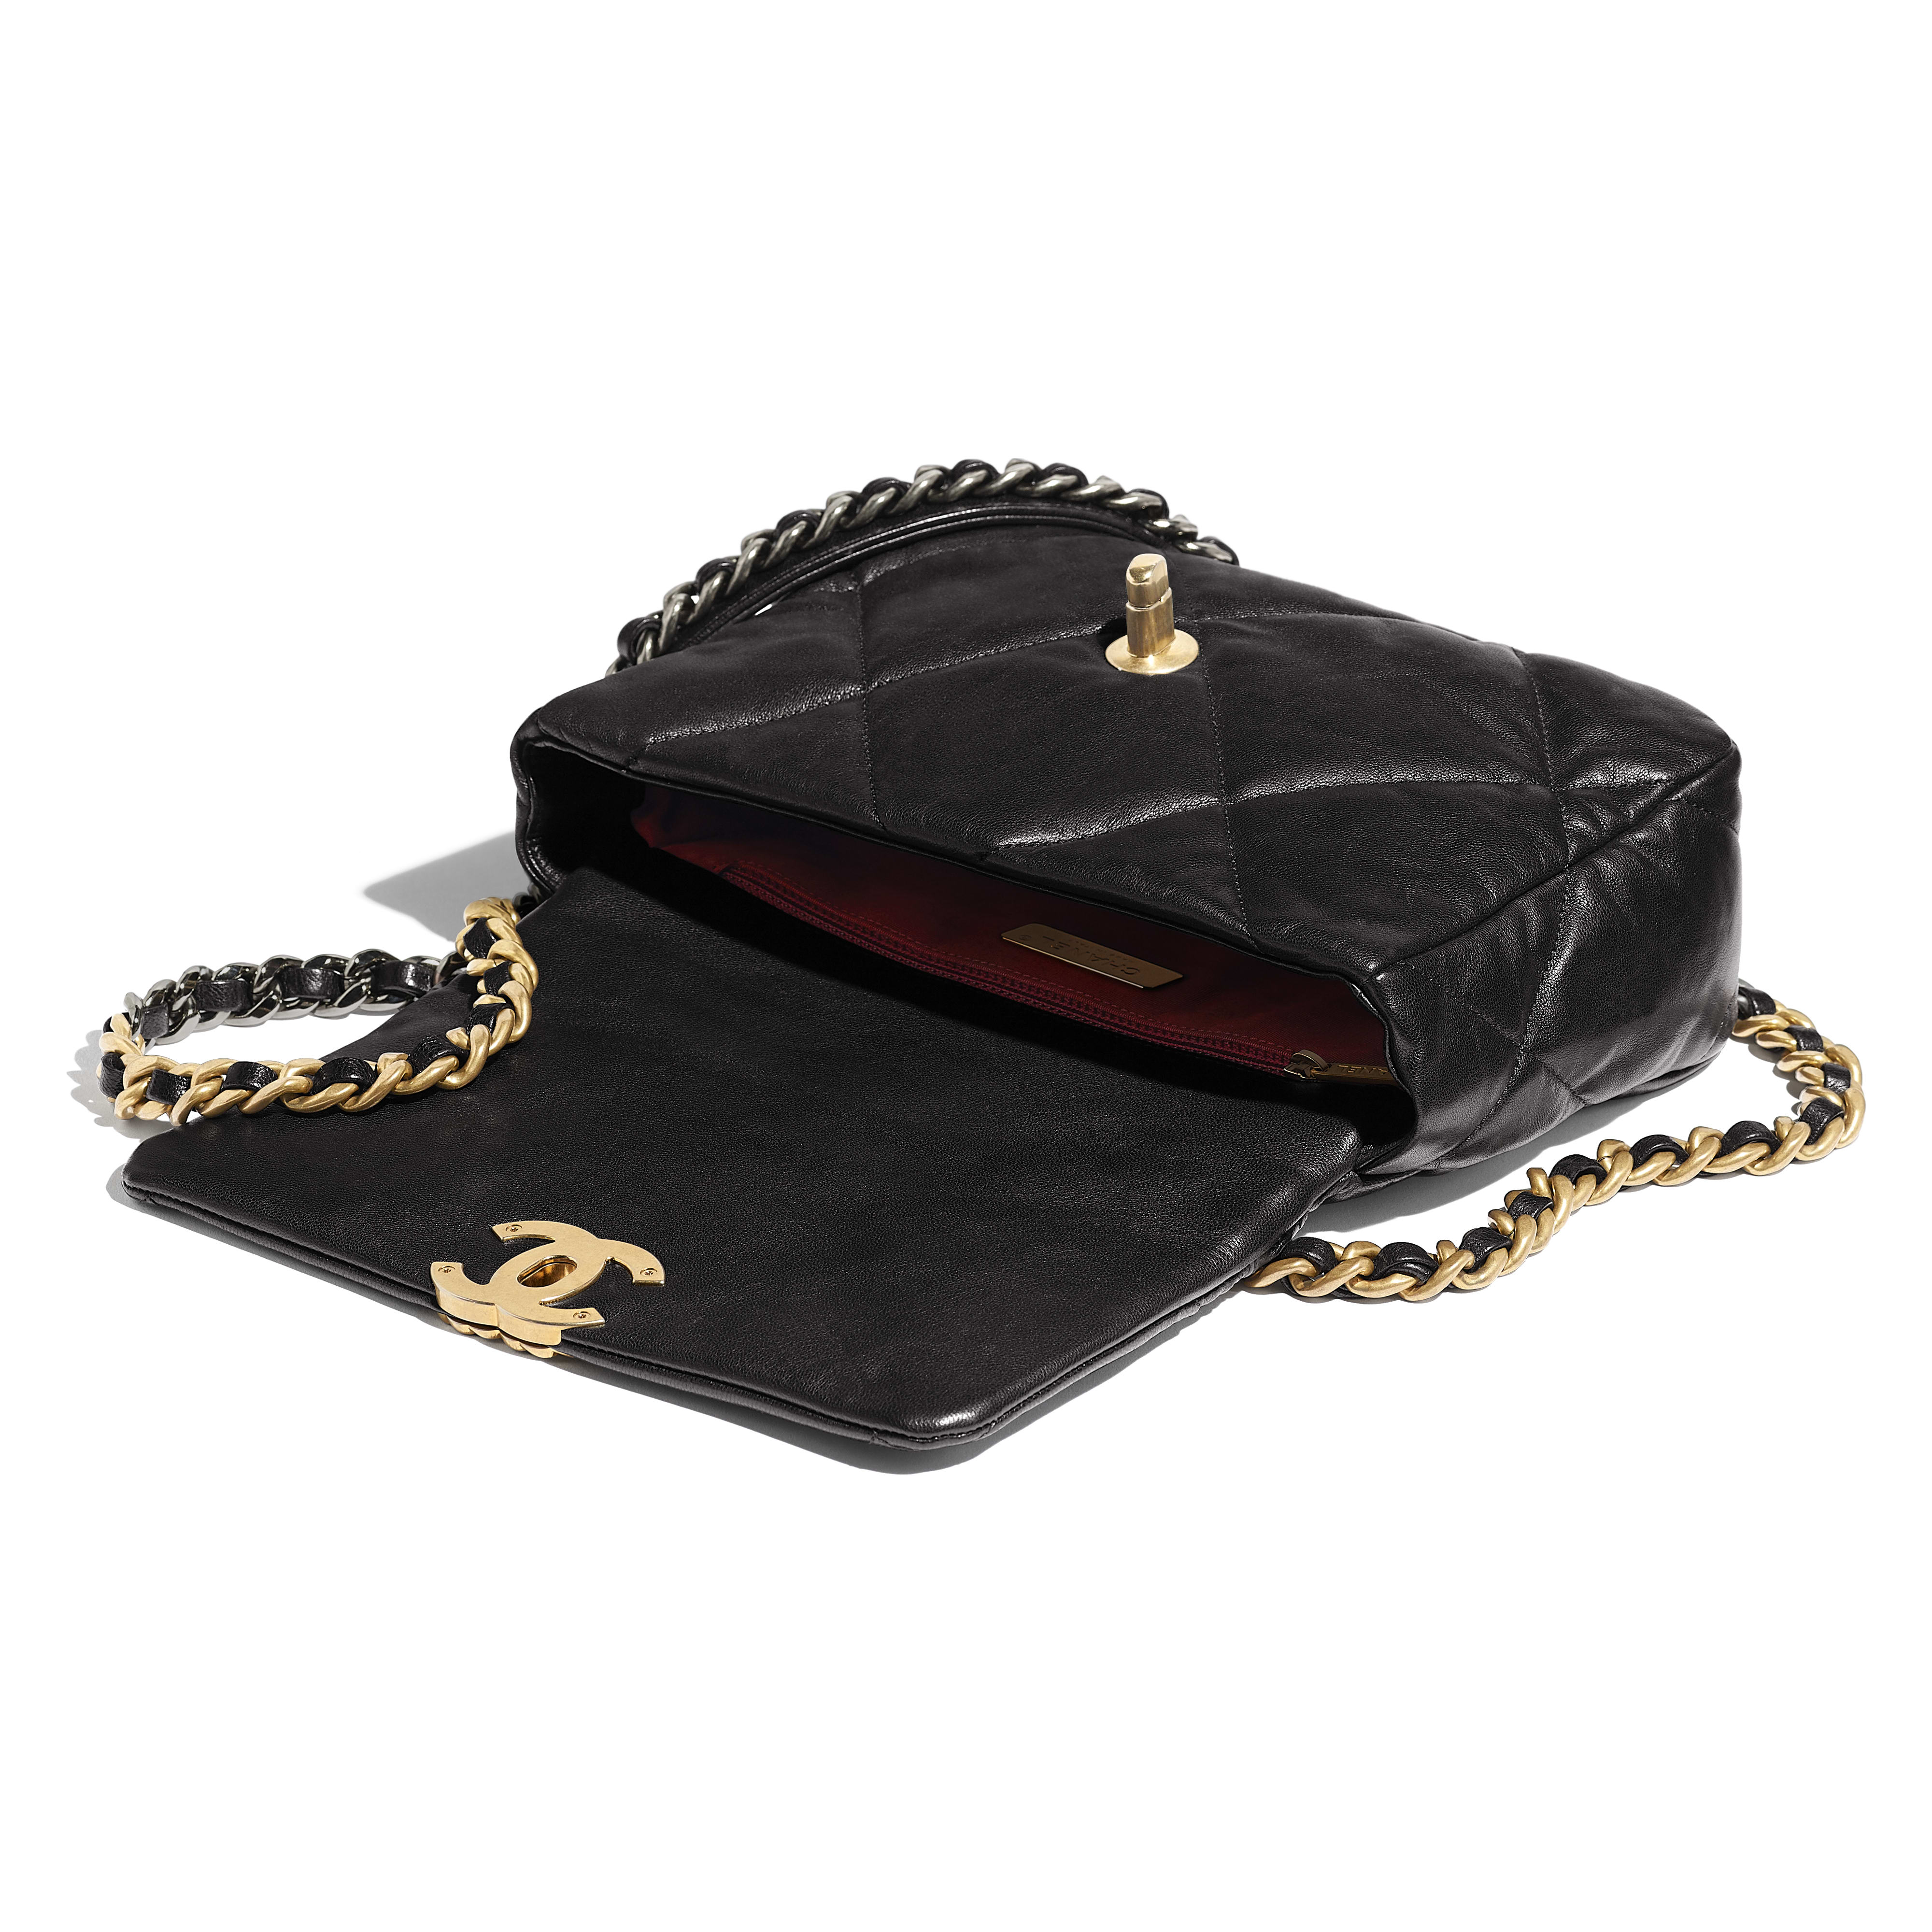 CHANEL 19 Flap Bag - Black - Goatskin, Gold-Tone, Silver-Tone & Ruthenium-Finish Metal - CHANEL - Other view - see standard sized version